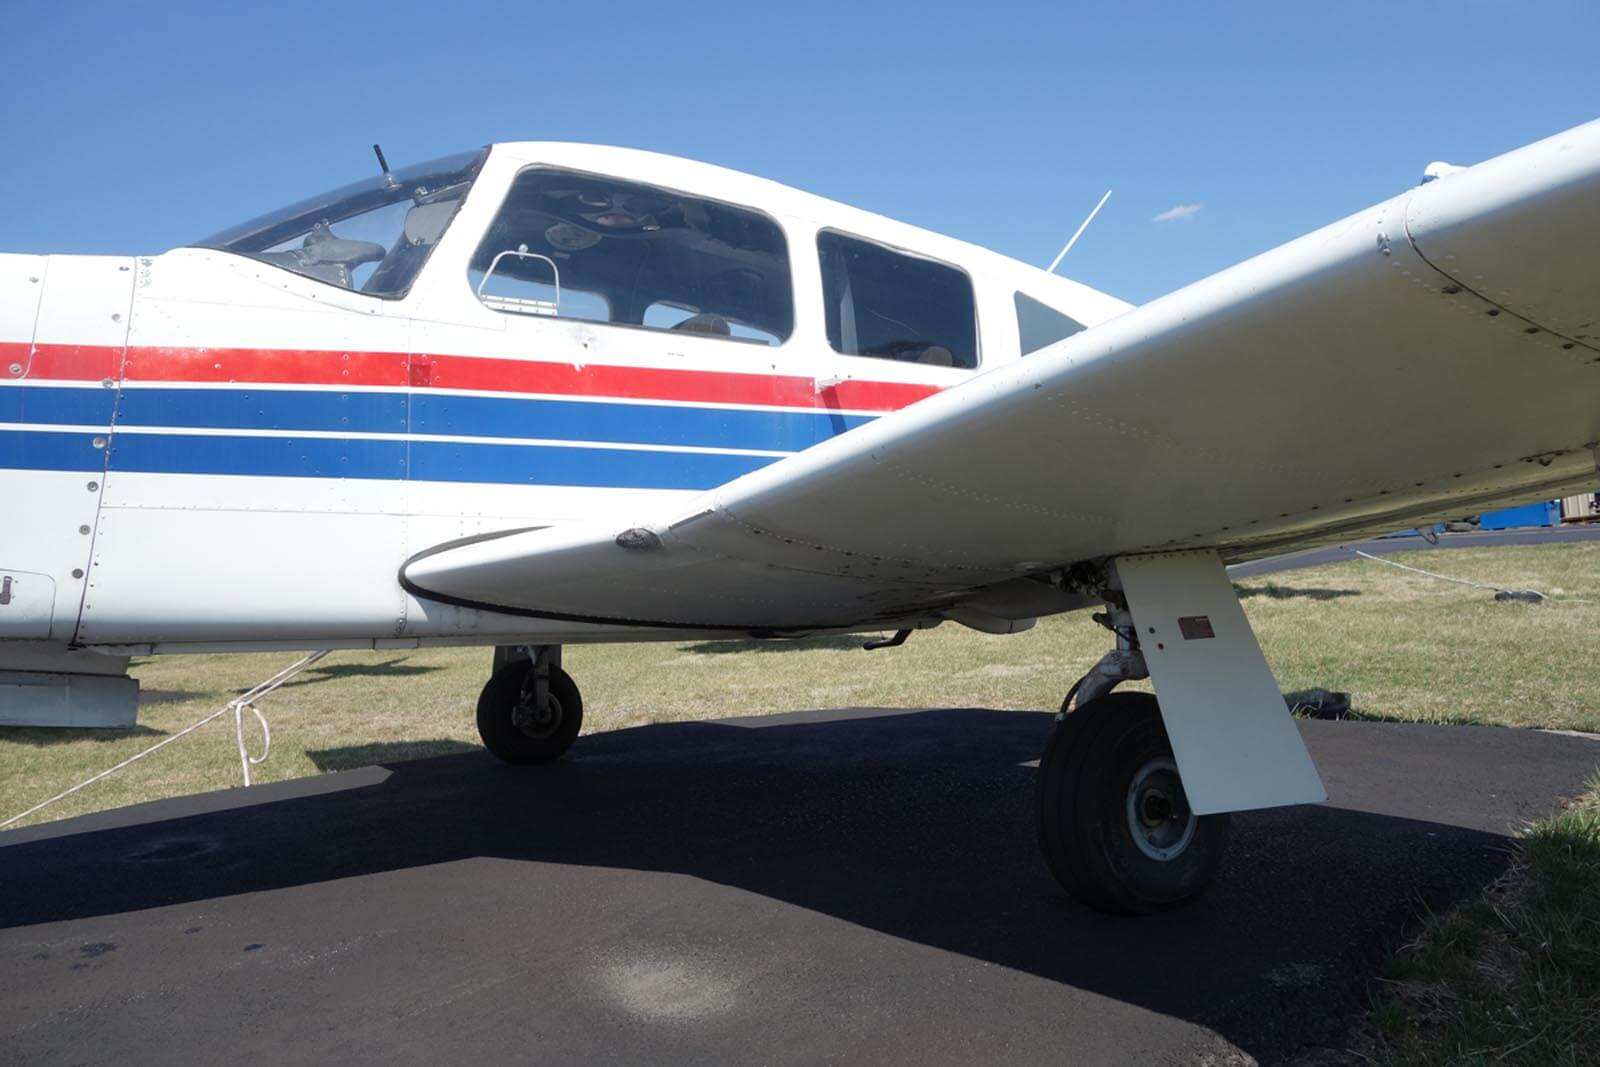 1978 Piper Arrow III ~ FOR SALE at Princeton Airport ~ Contact Ken Nierenberg at 609-731-4628 for details